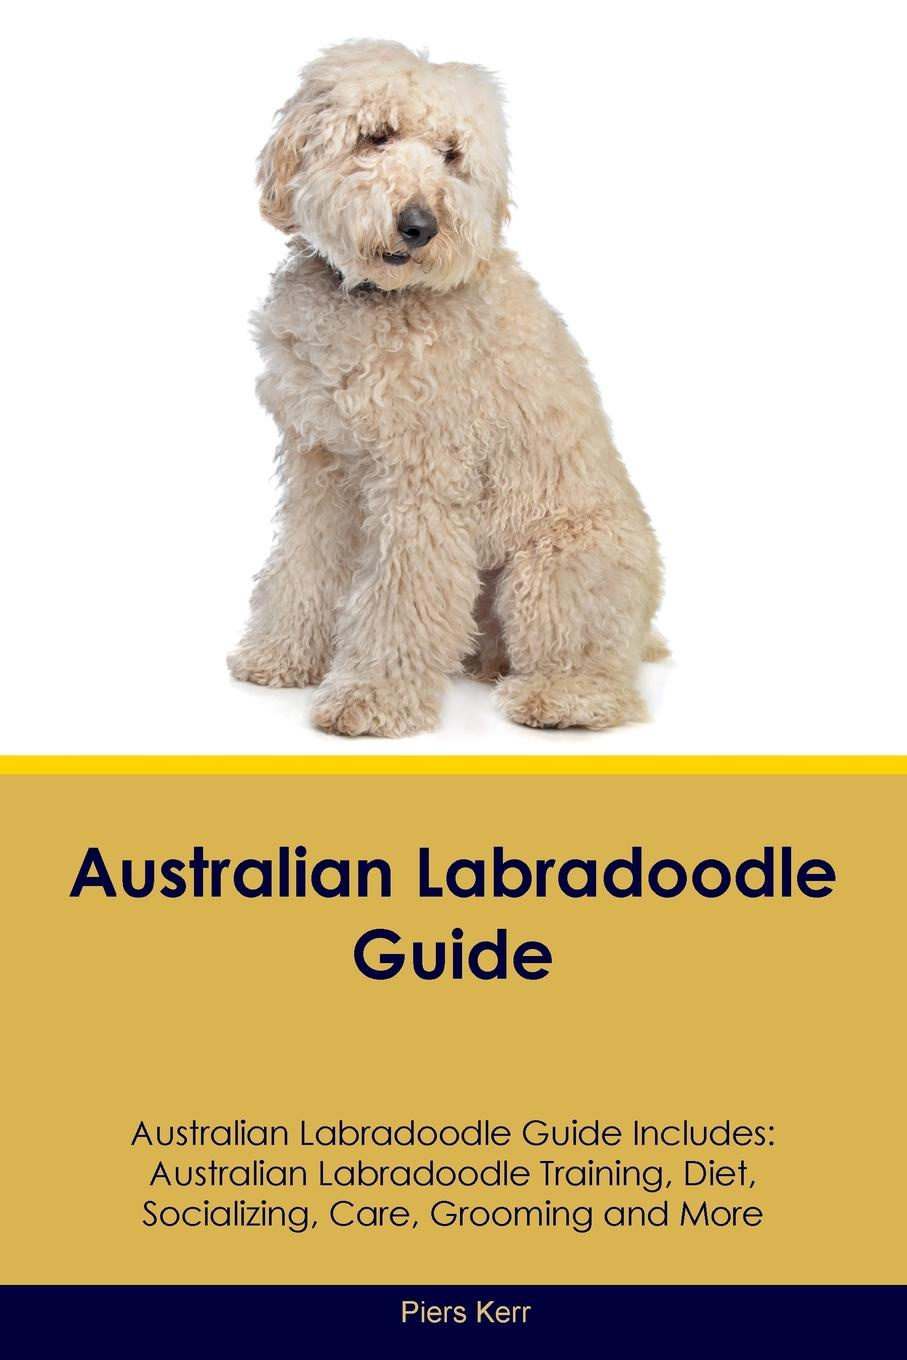 Piers Kerr Australian Labradoodle Guide. Australian Labradoodle Training, Diet, Socializing, Care, Grooming, Breeding and More n renton e family trusts a plain english guide for australian families of average means